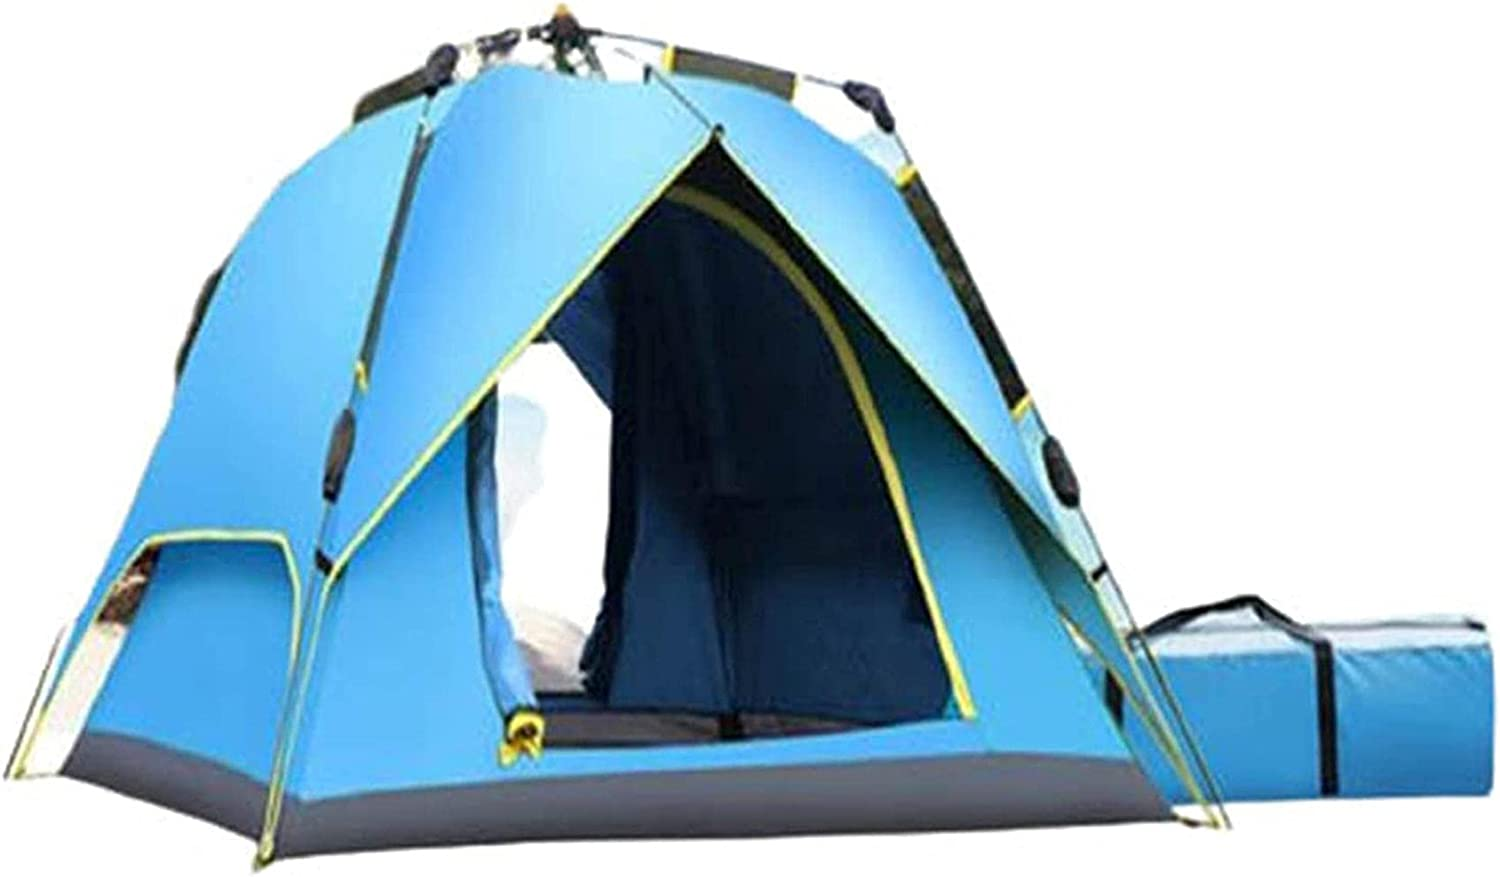 Xkun Outdoor Outstanding Spring new work Camp Tent Portable Hiking Picnic Camping